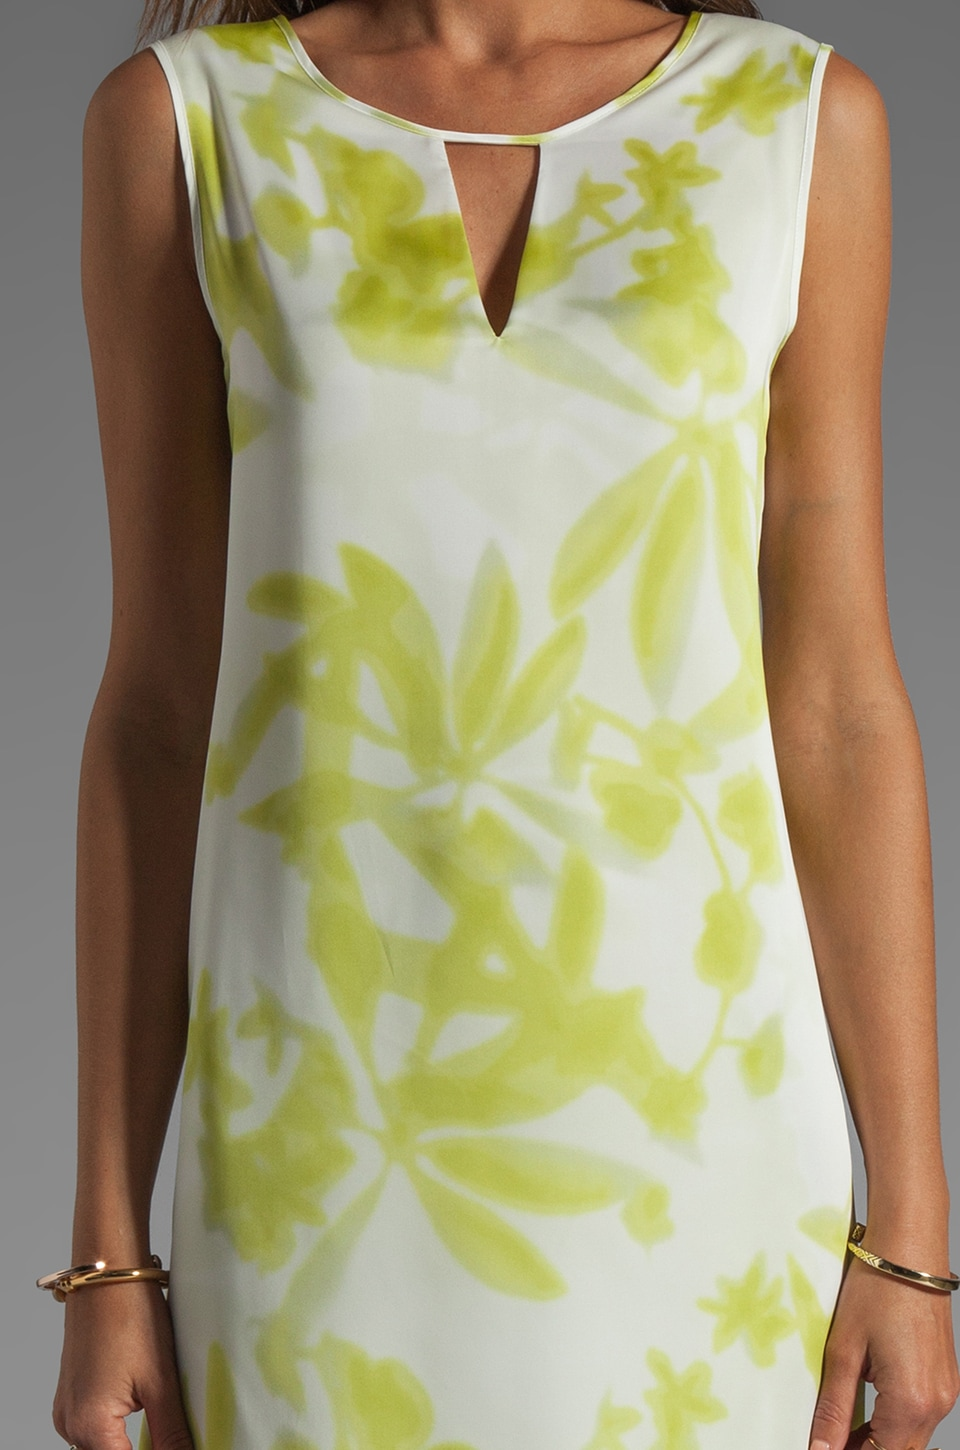 BCBGMAXAZRIA Hi-Low Dress in Gardenia/Light Lime